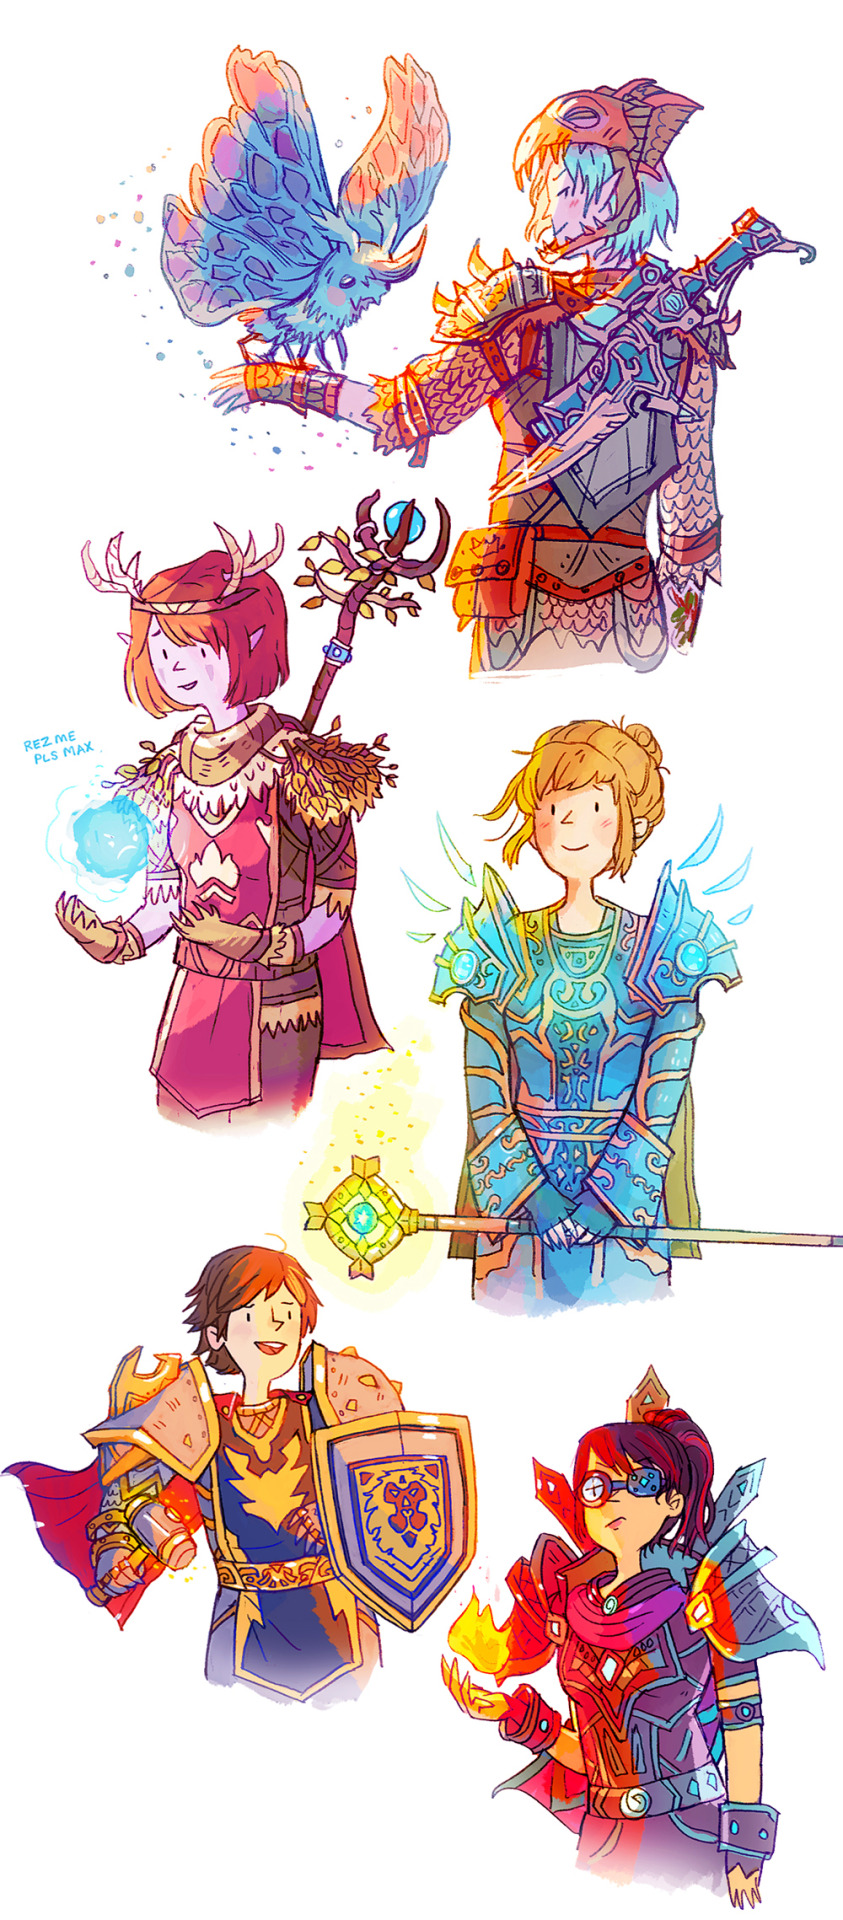 Life Is Strange Fanart Wow World Of Warcraft Guild Of Arcadia Chloe The Hunter Max The Druid